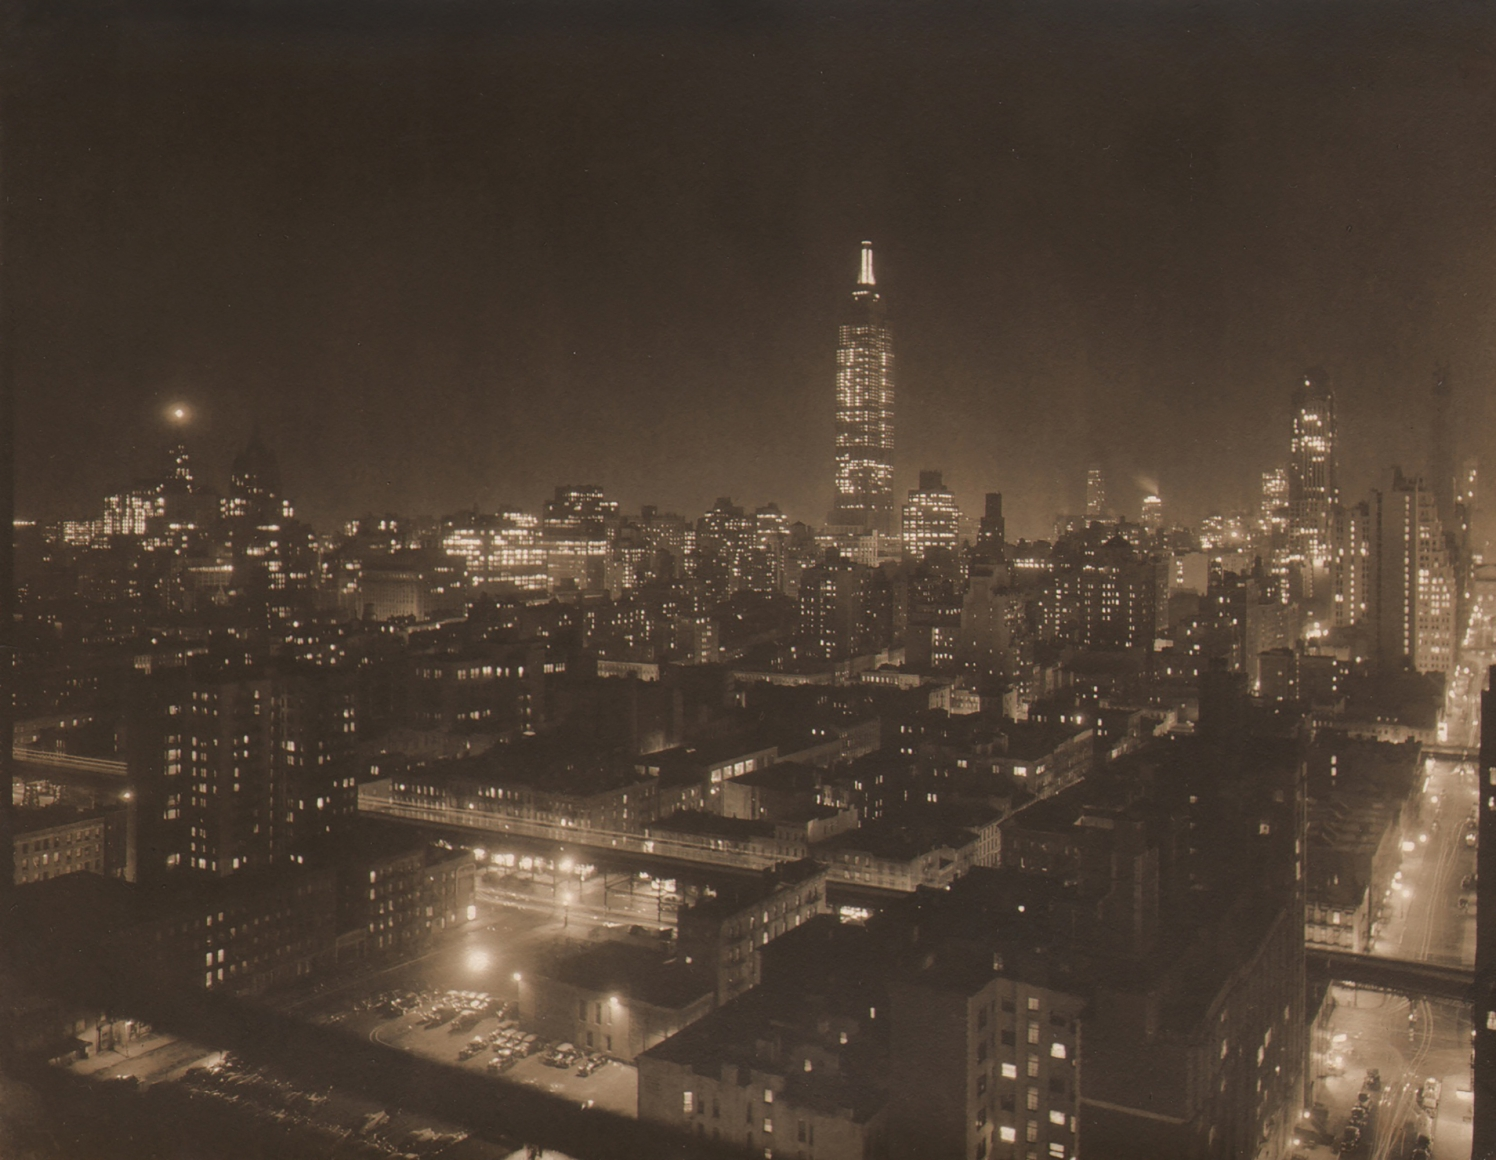 Paul J. Woolf, Empire State Building, c. 1933. Night time cityscape with Empire State Building in center of frame in background.